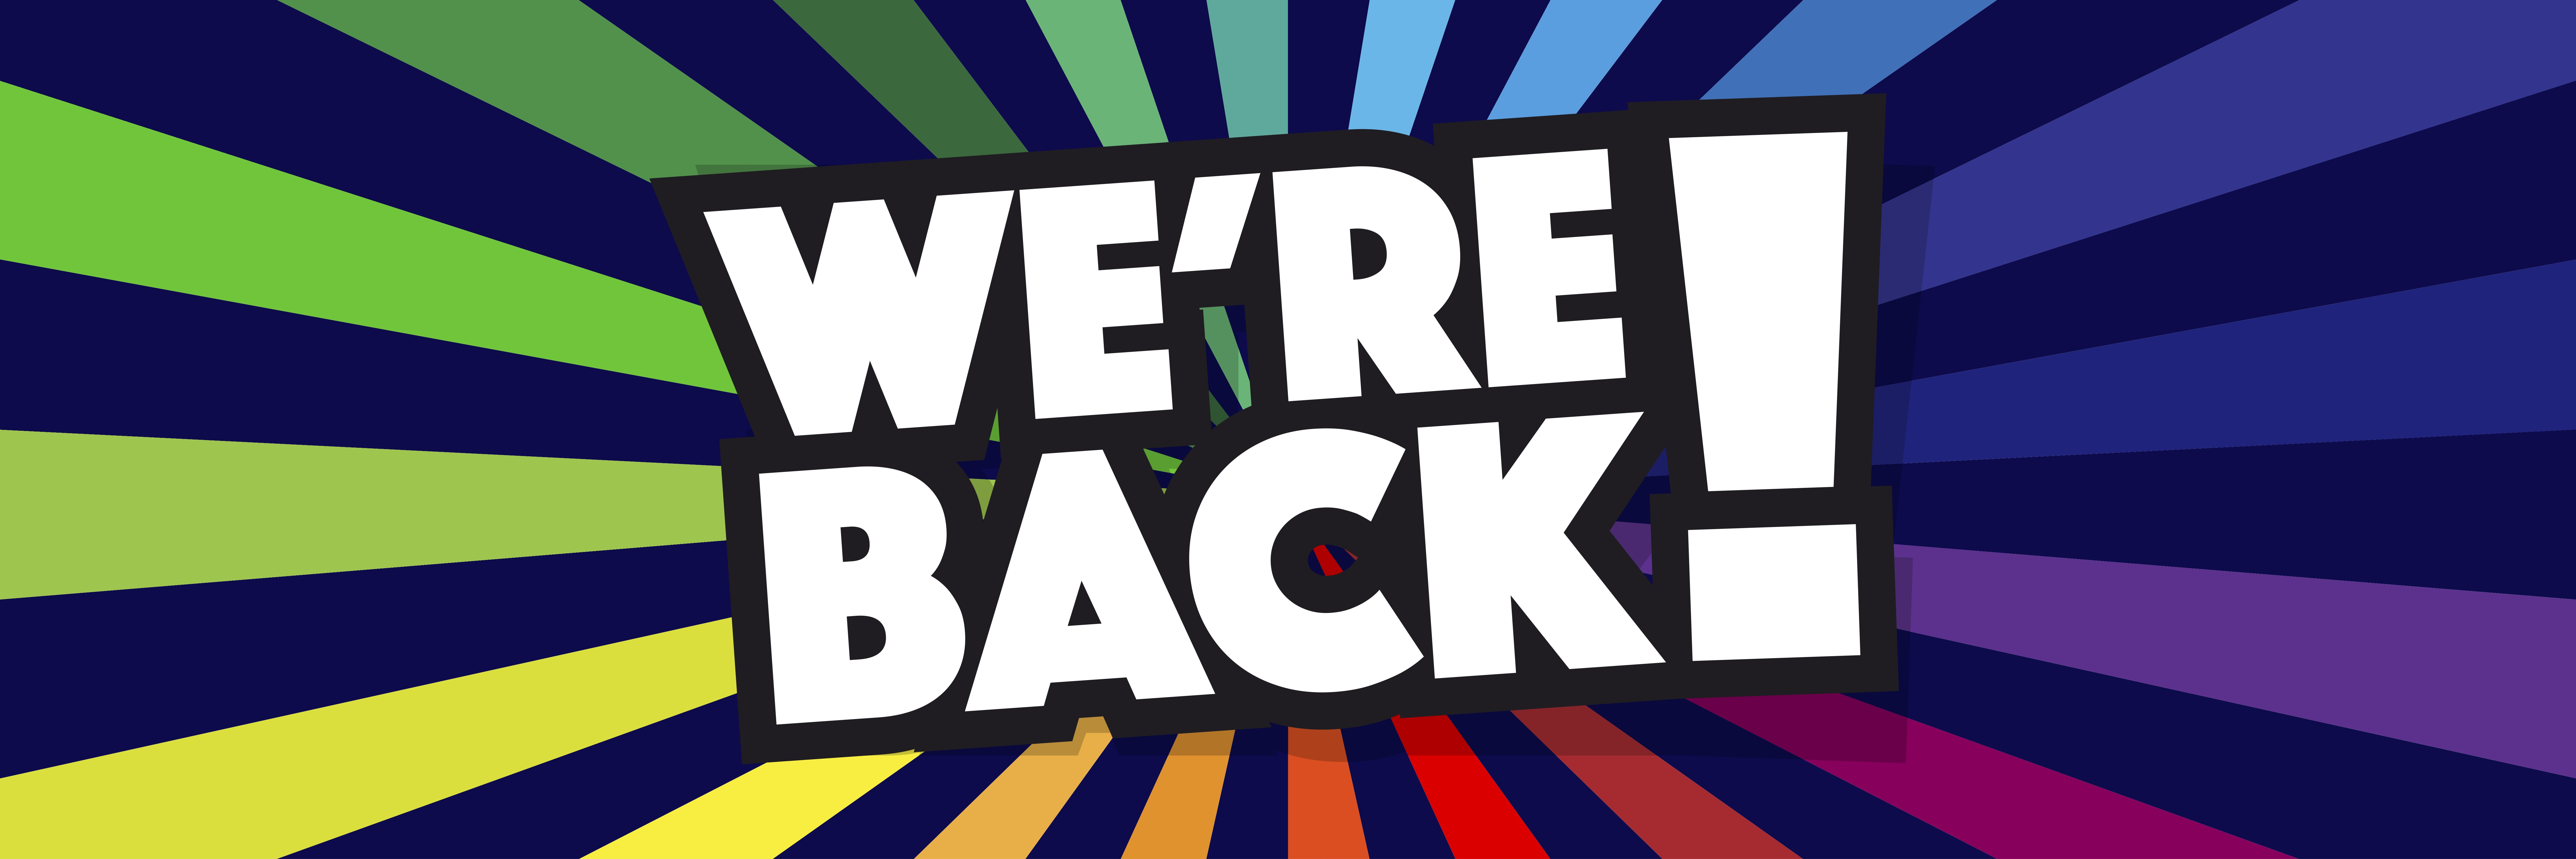 We're Back! graphic